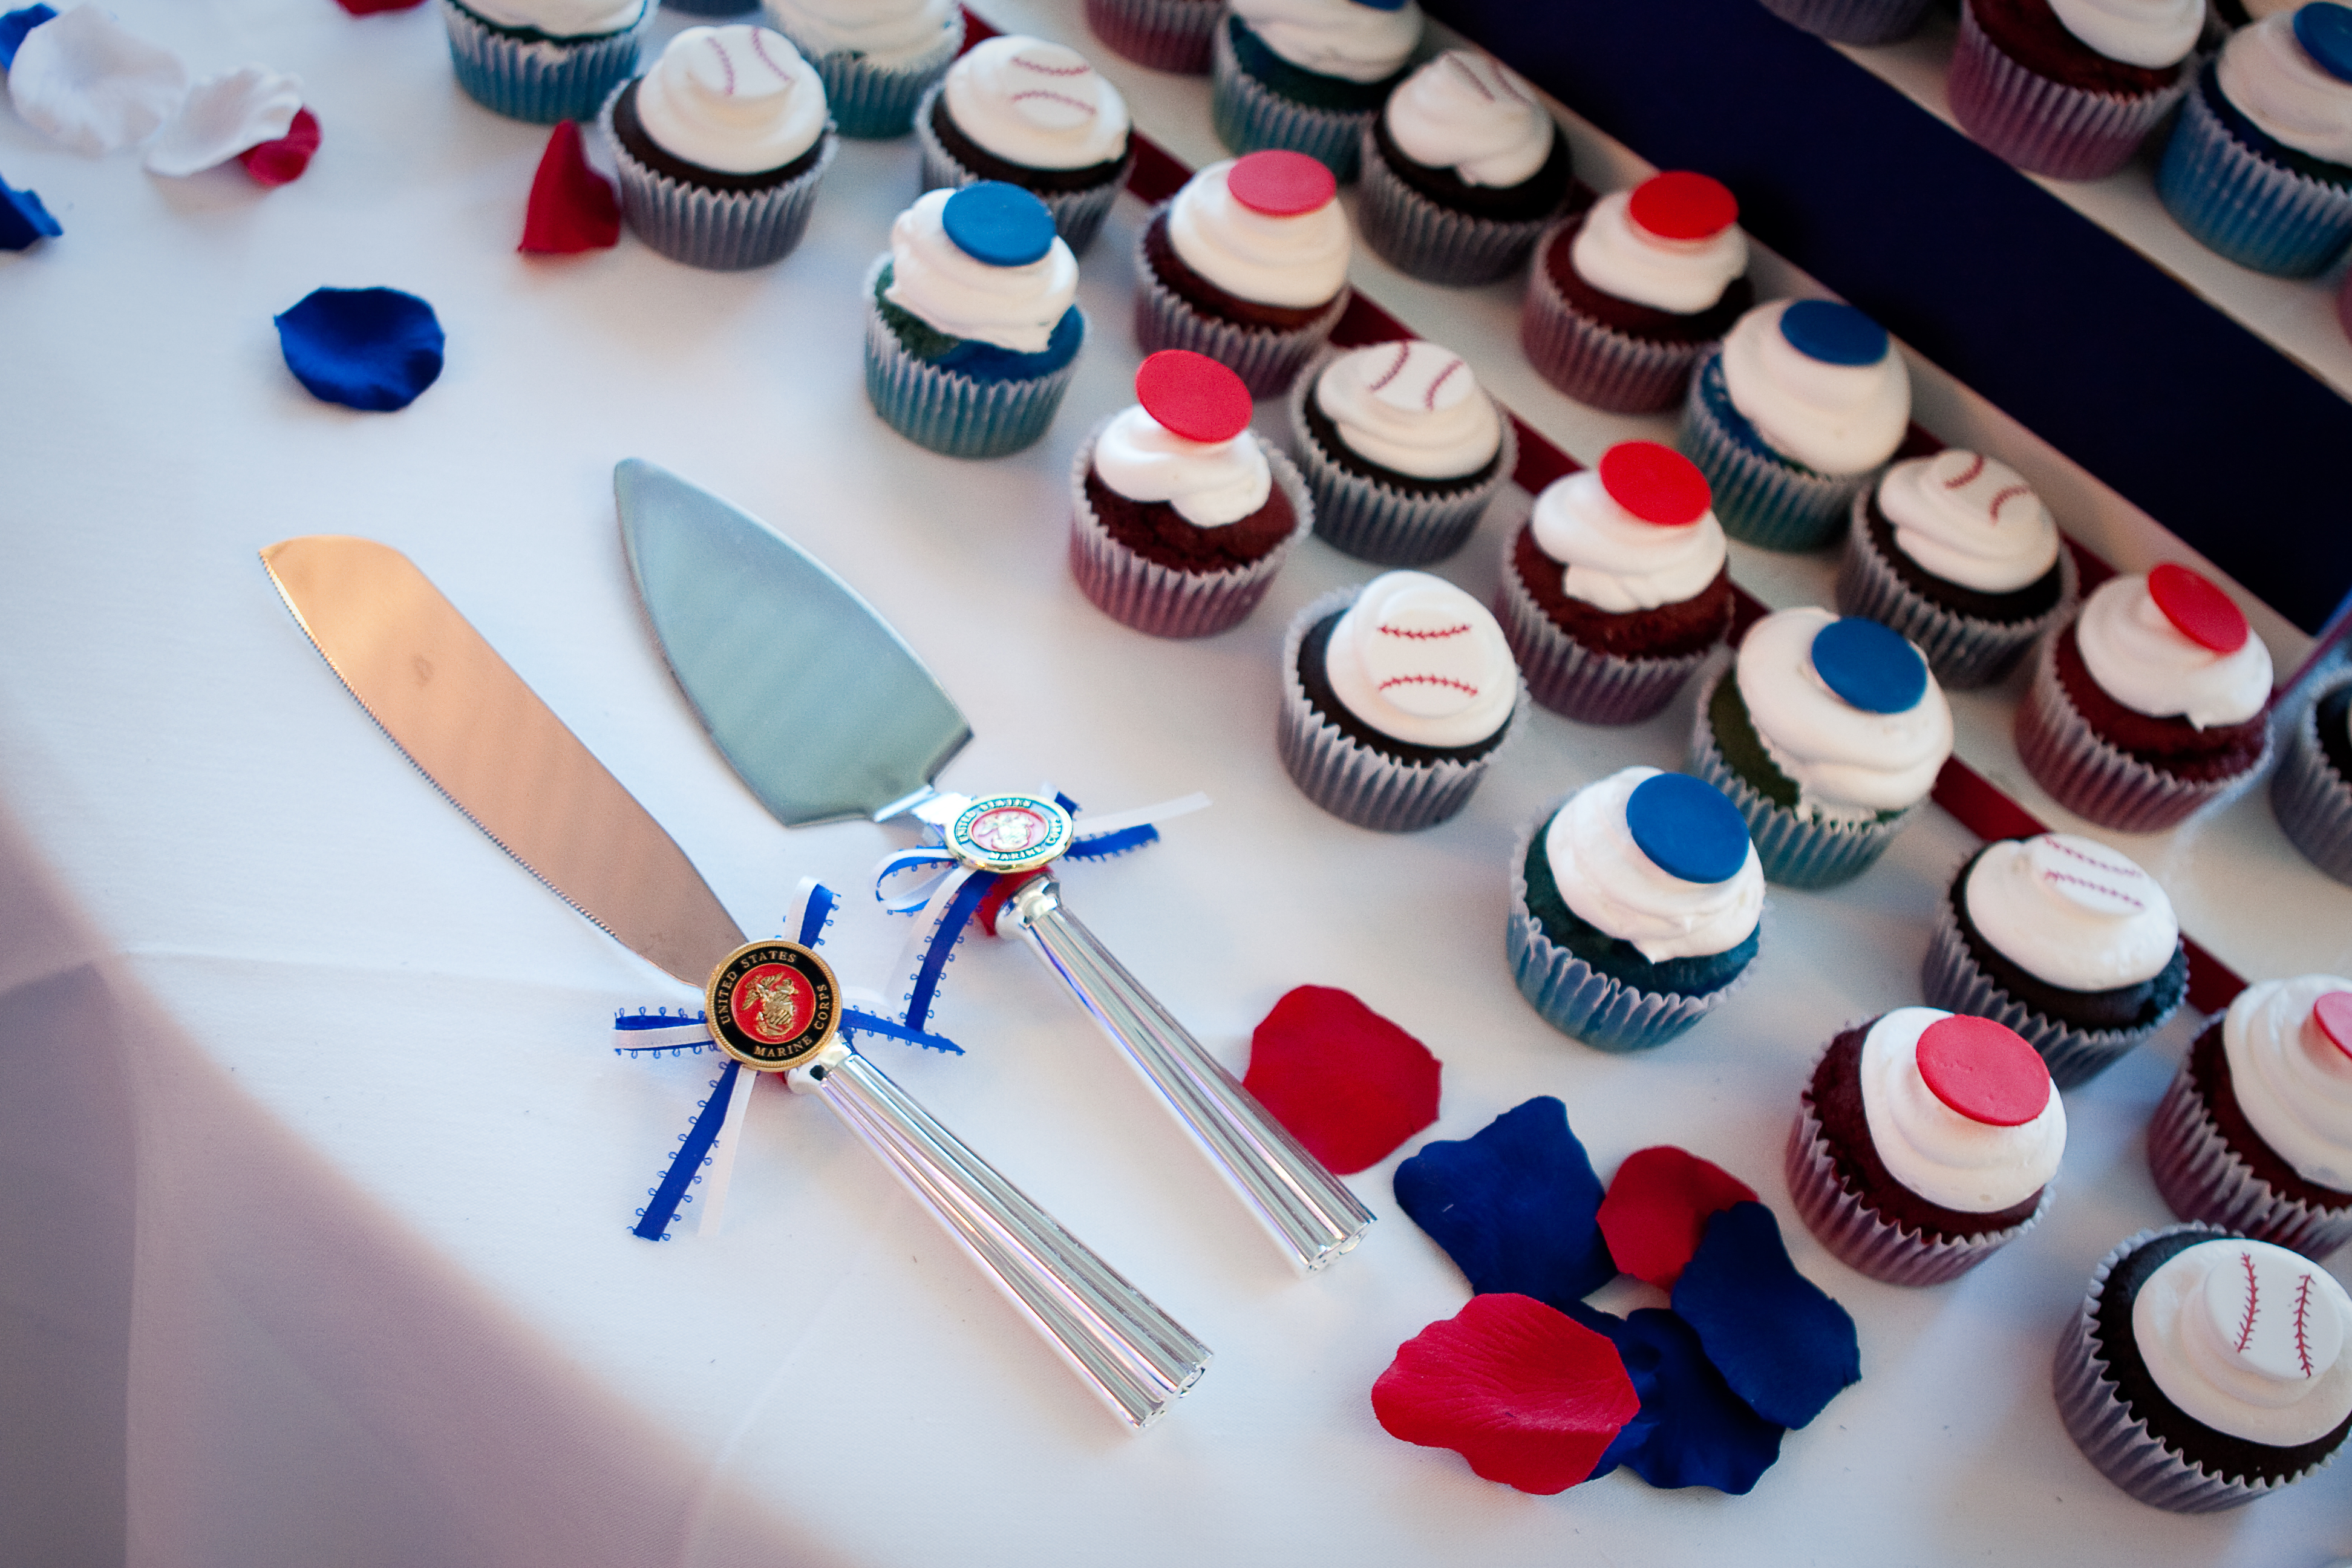 Photography, Cakes, white, red, blue, cake, Military, Marine, Hollis, Corps, Cari